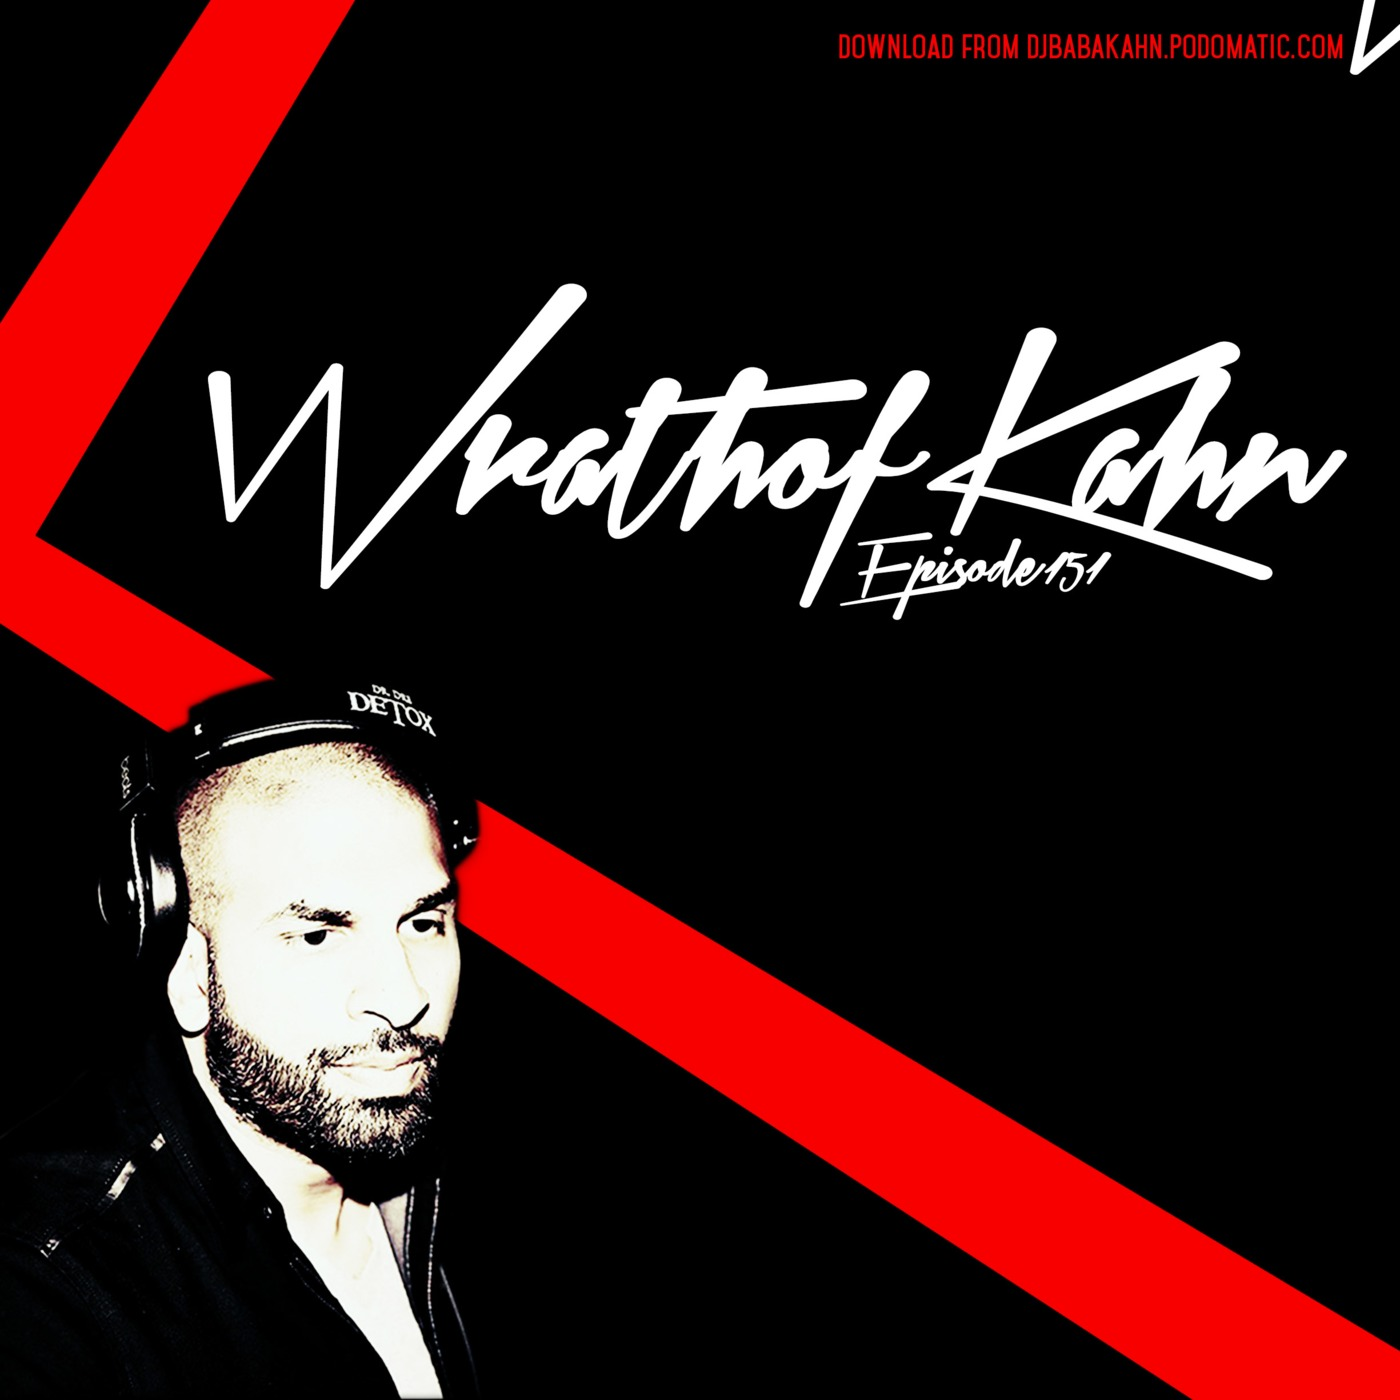 Wrath Of Kahn DJ Mix 151 Baba Kahn DJ BABA KAHN podcast